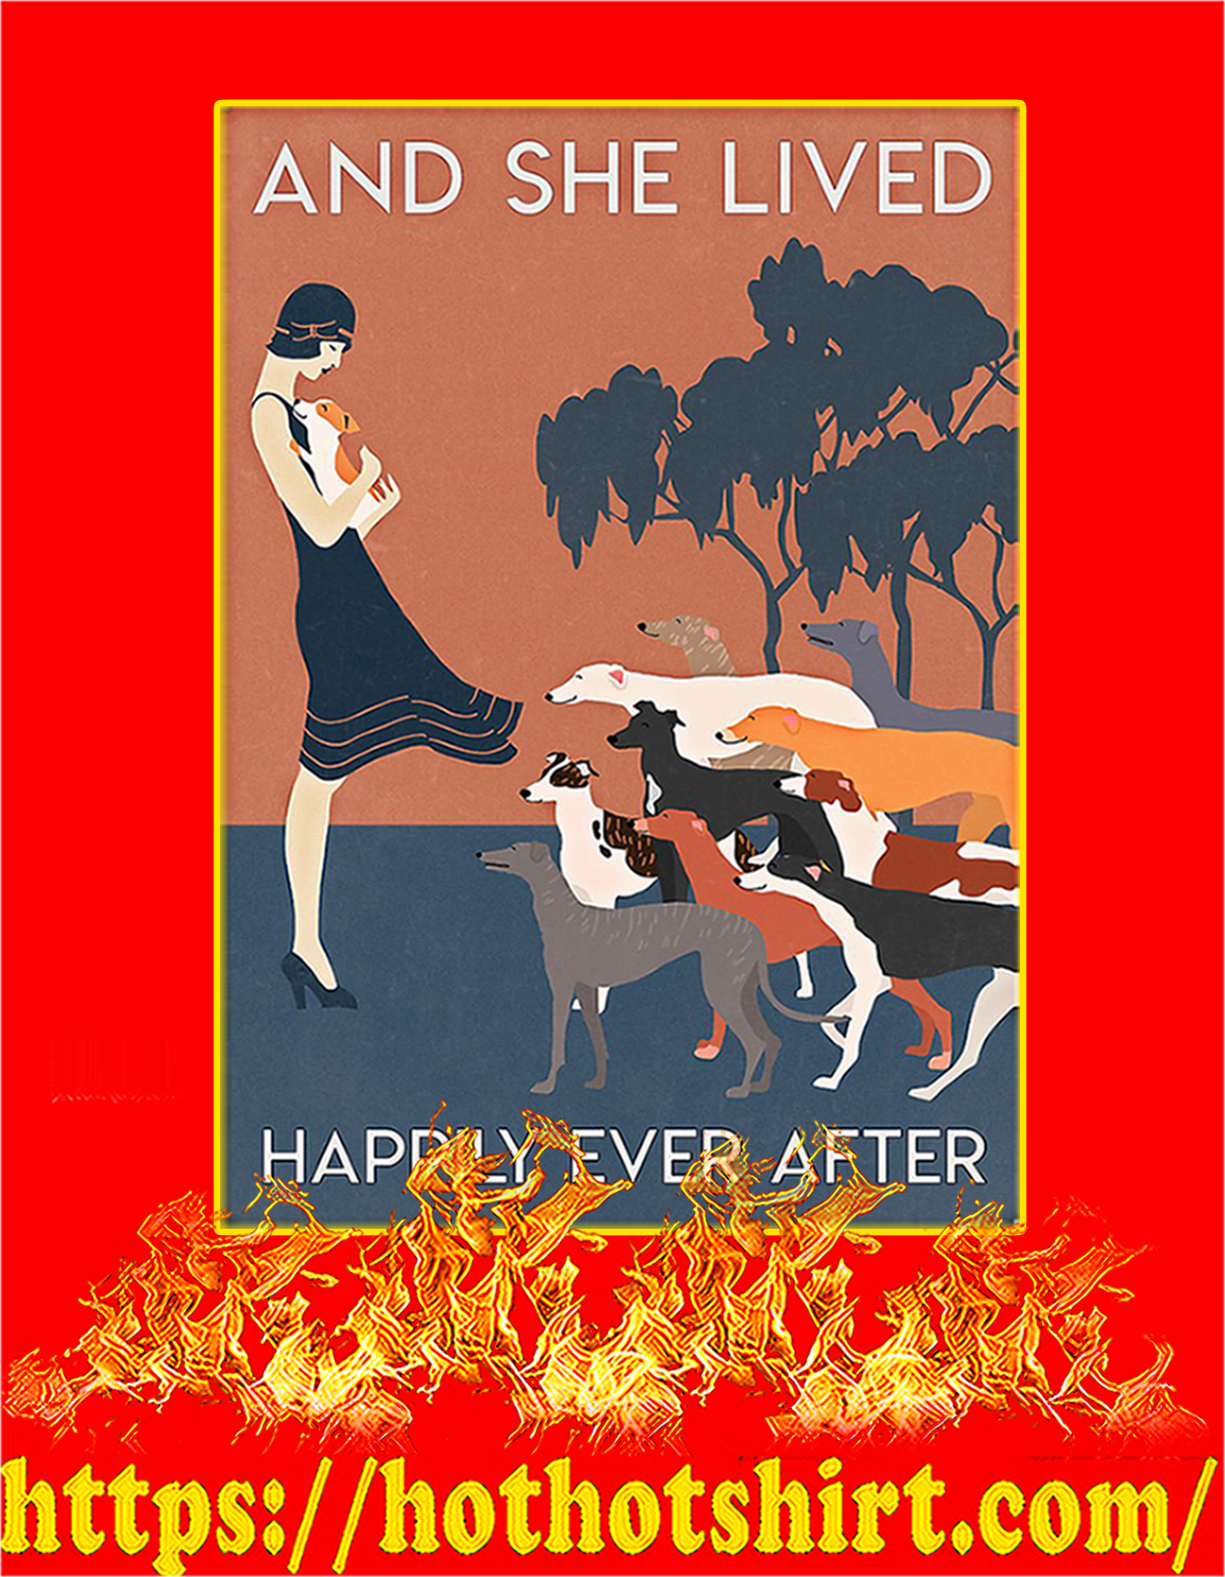 Greyhound And she lived happily ever after poster - A4